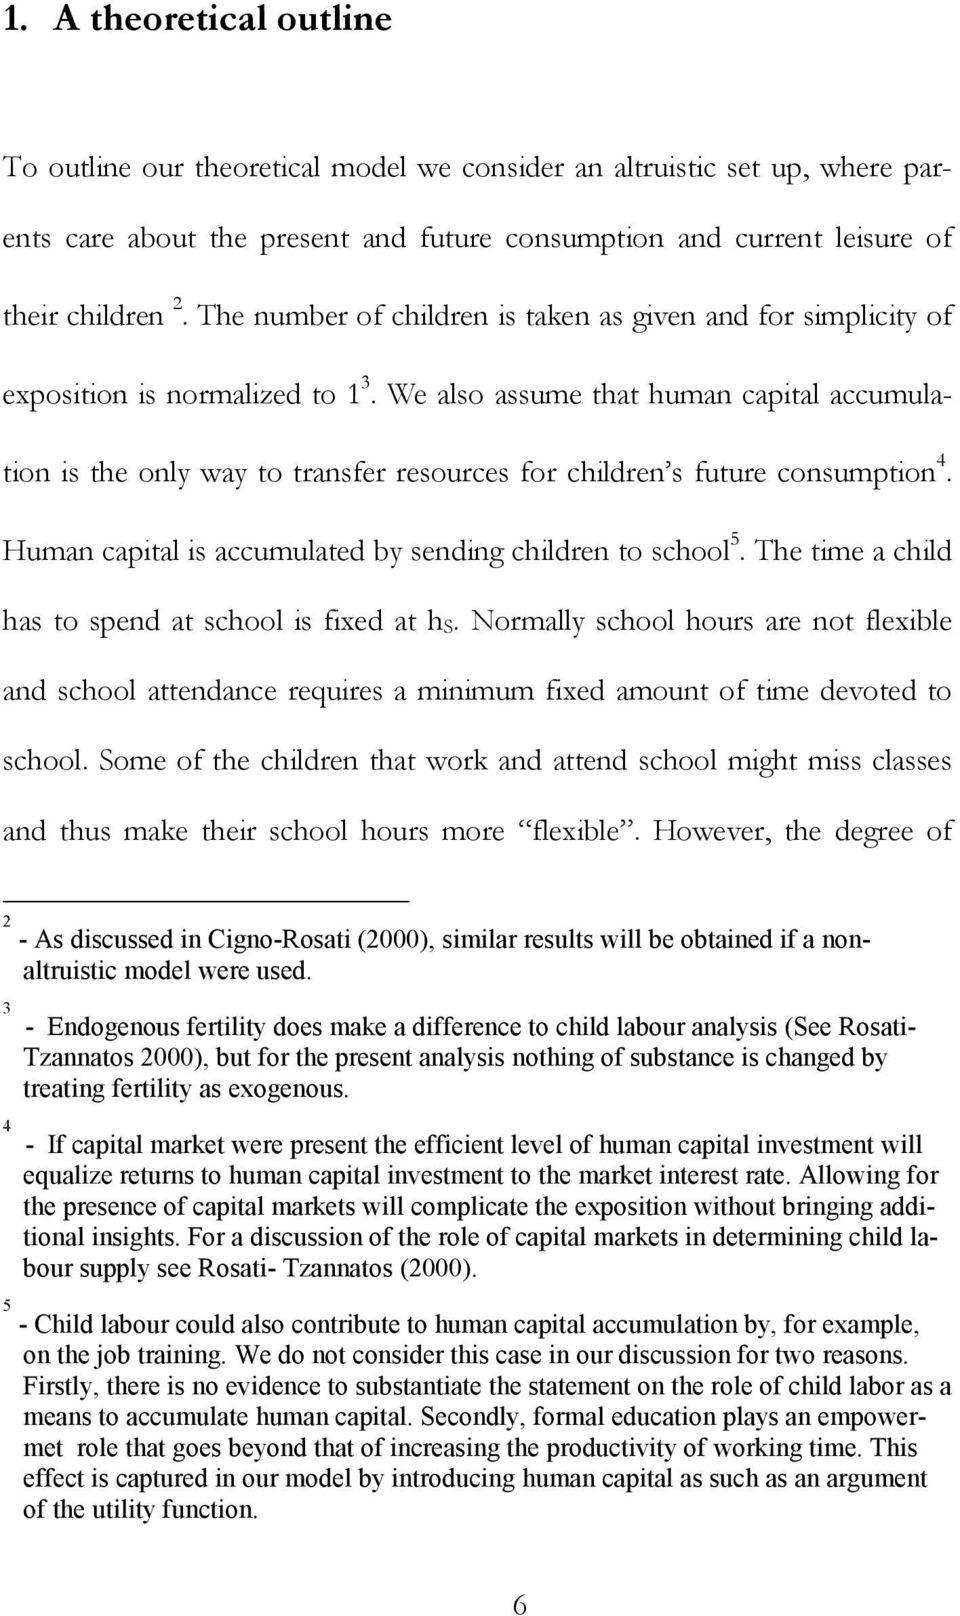 We also assume that human capital accumulation is the only way to transfer resources for children s future consumption 4. Human capital is accumulated by sending children to school 5.